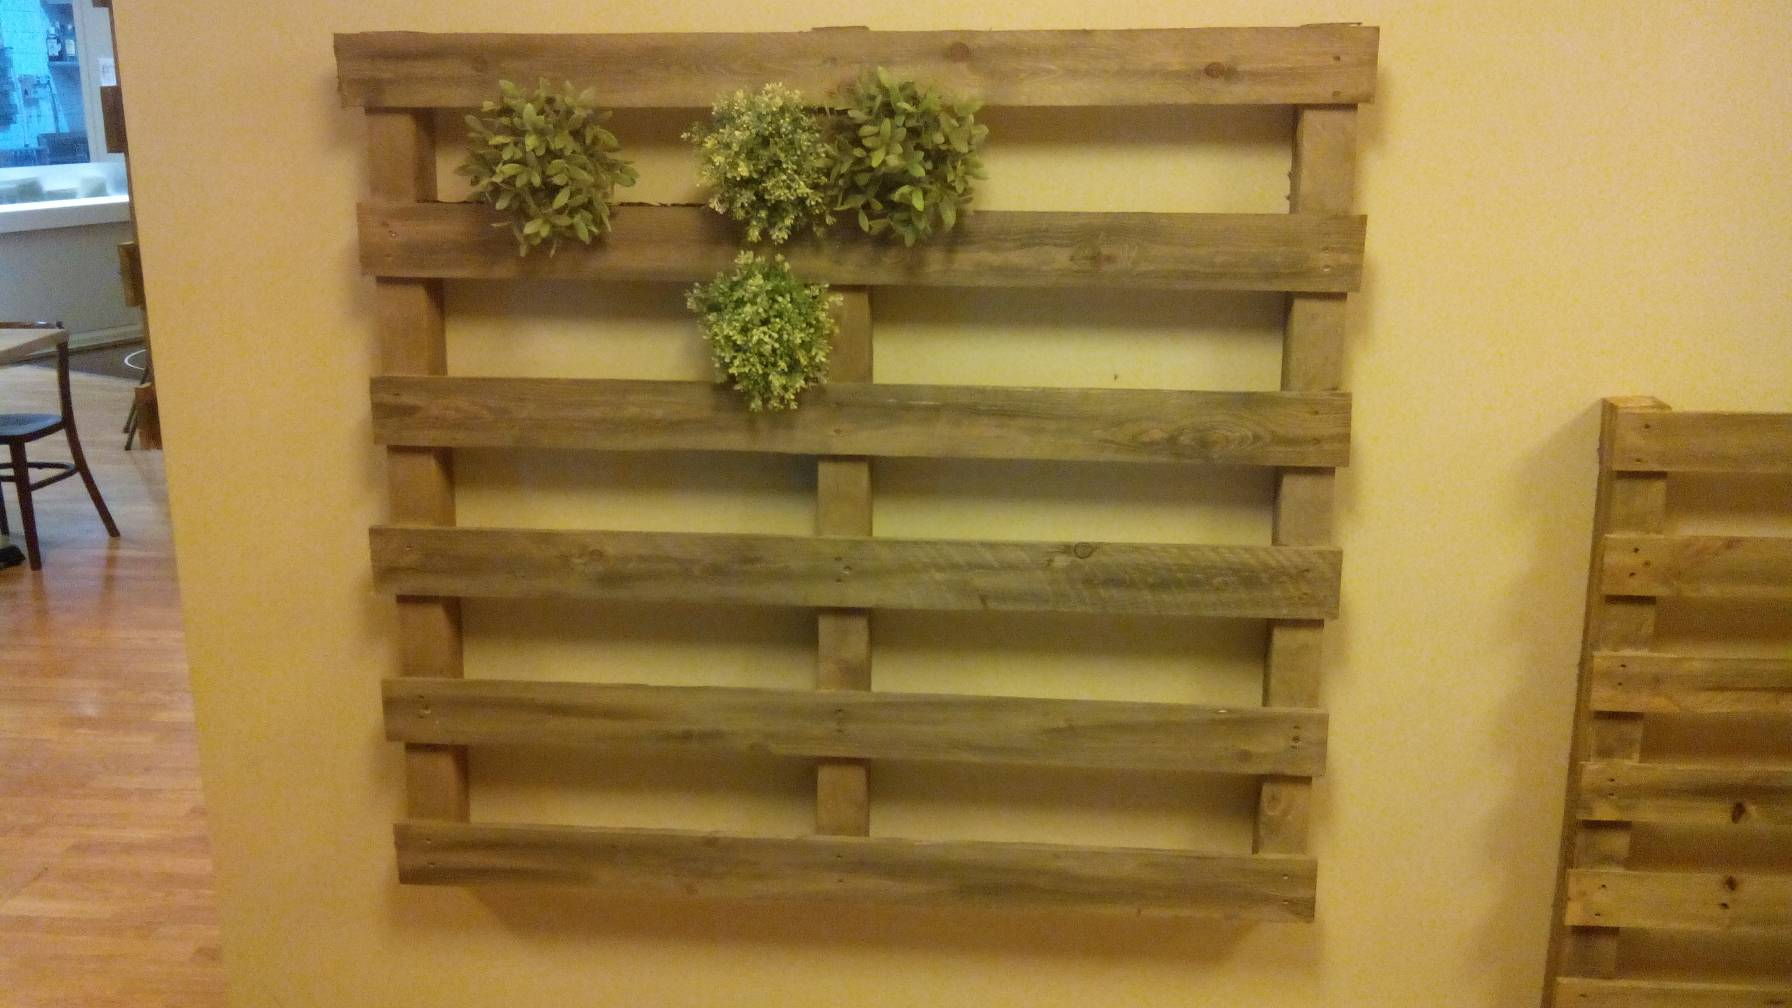 Vertical garden made with palletsdiy pallet furniture diy pallet furniture - Jardiniere en palette ...